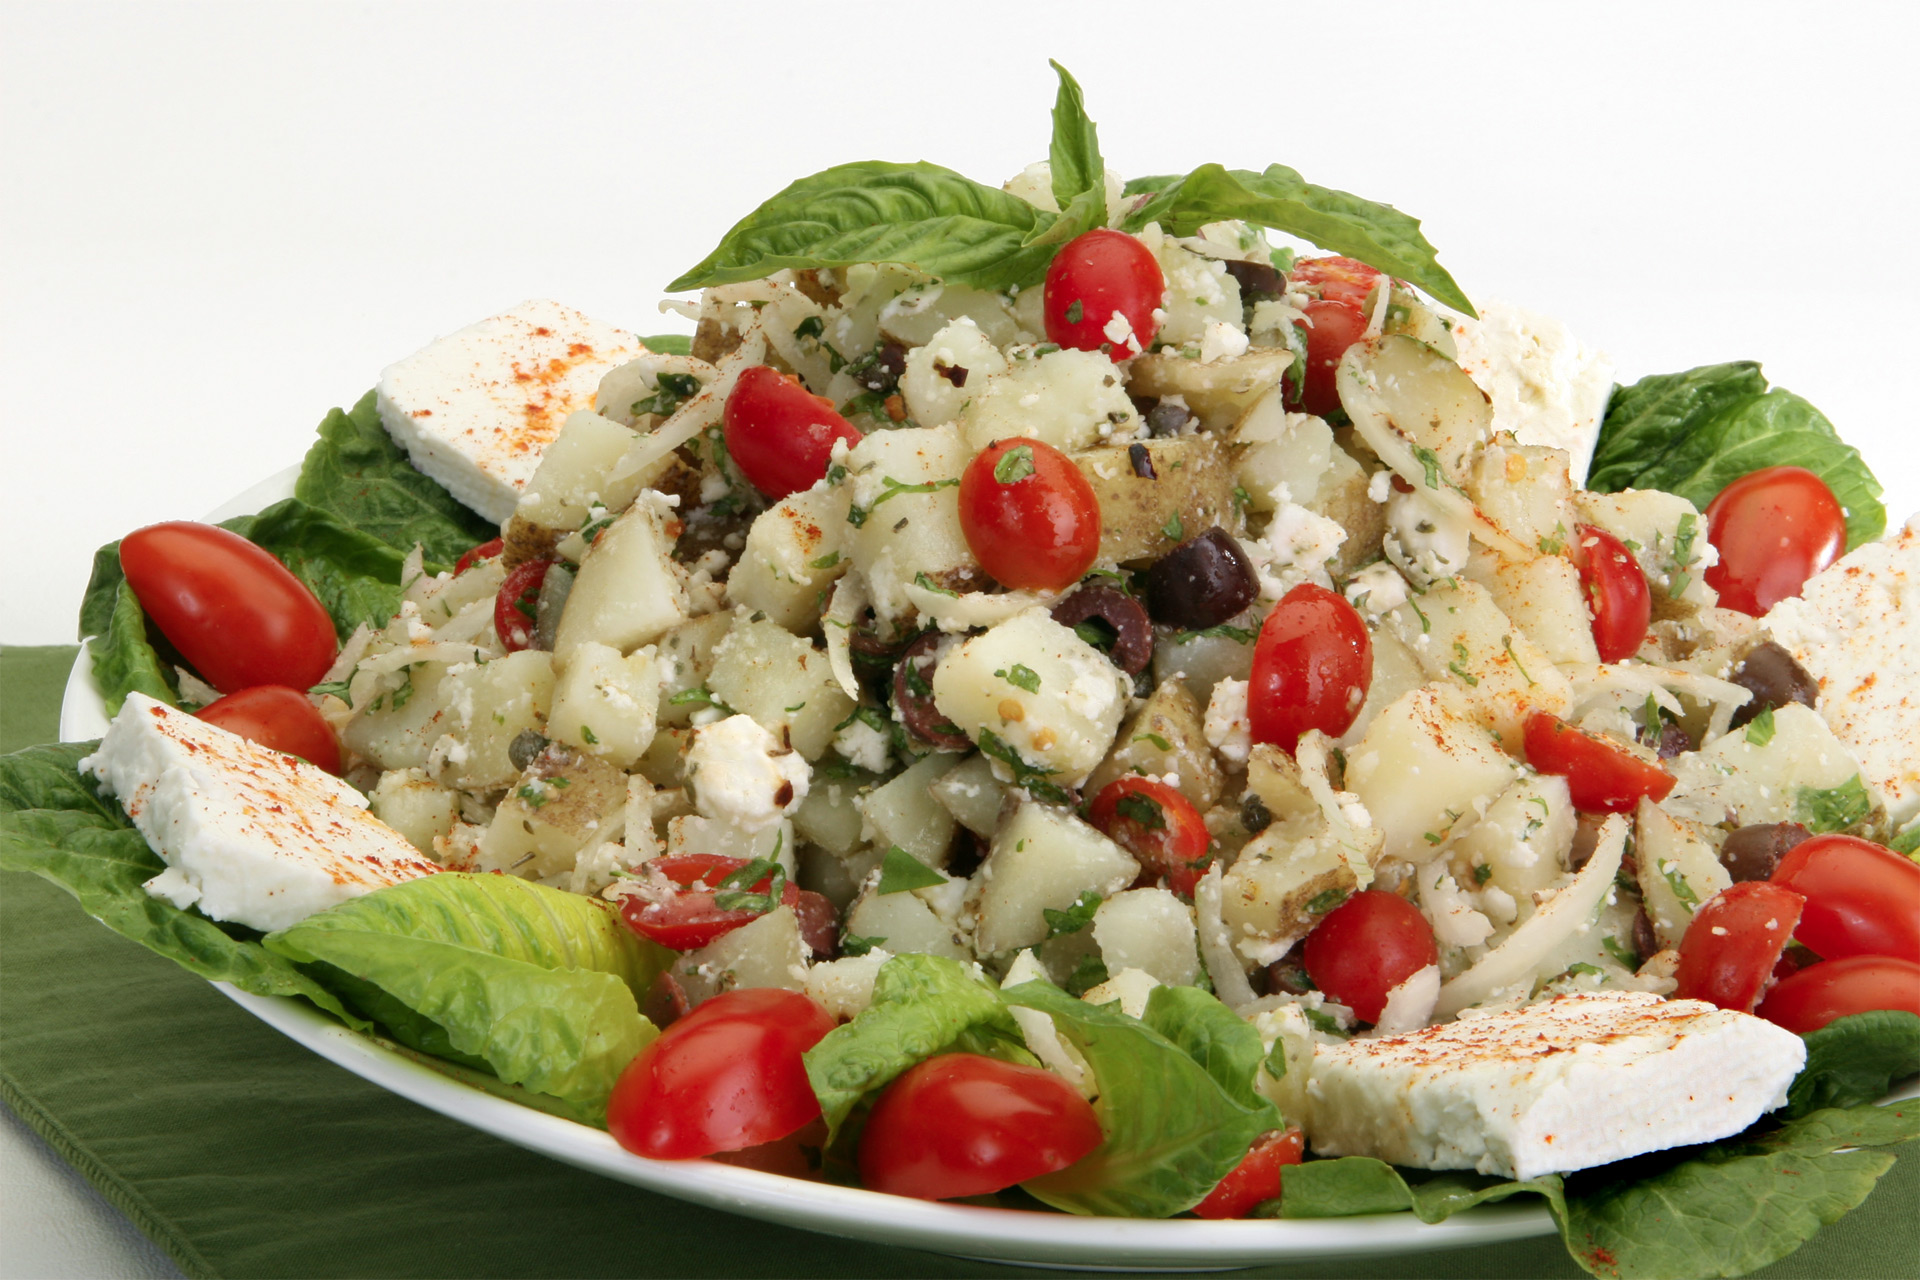 Feta, Tomato and Caper Potato Salad